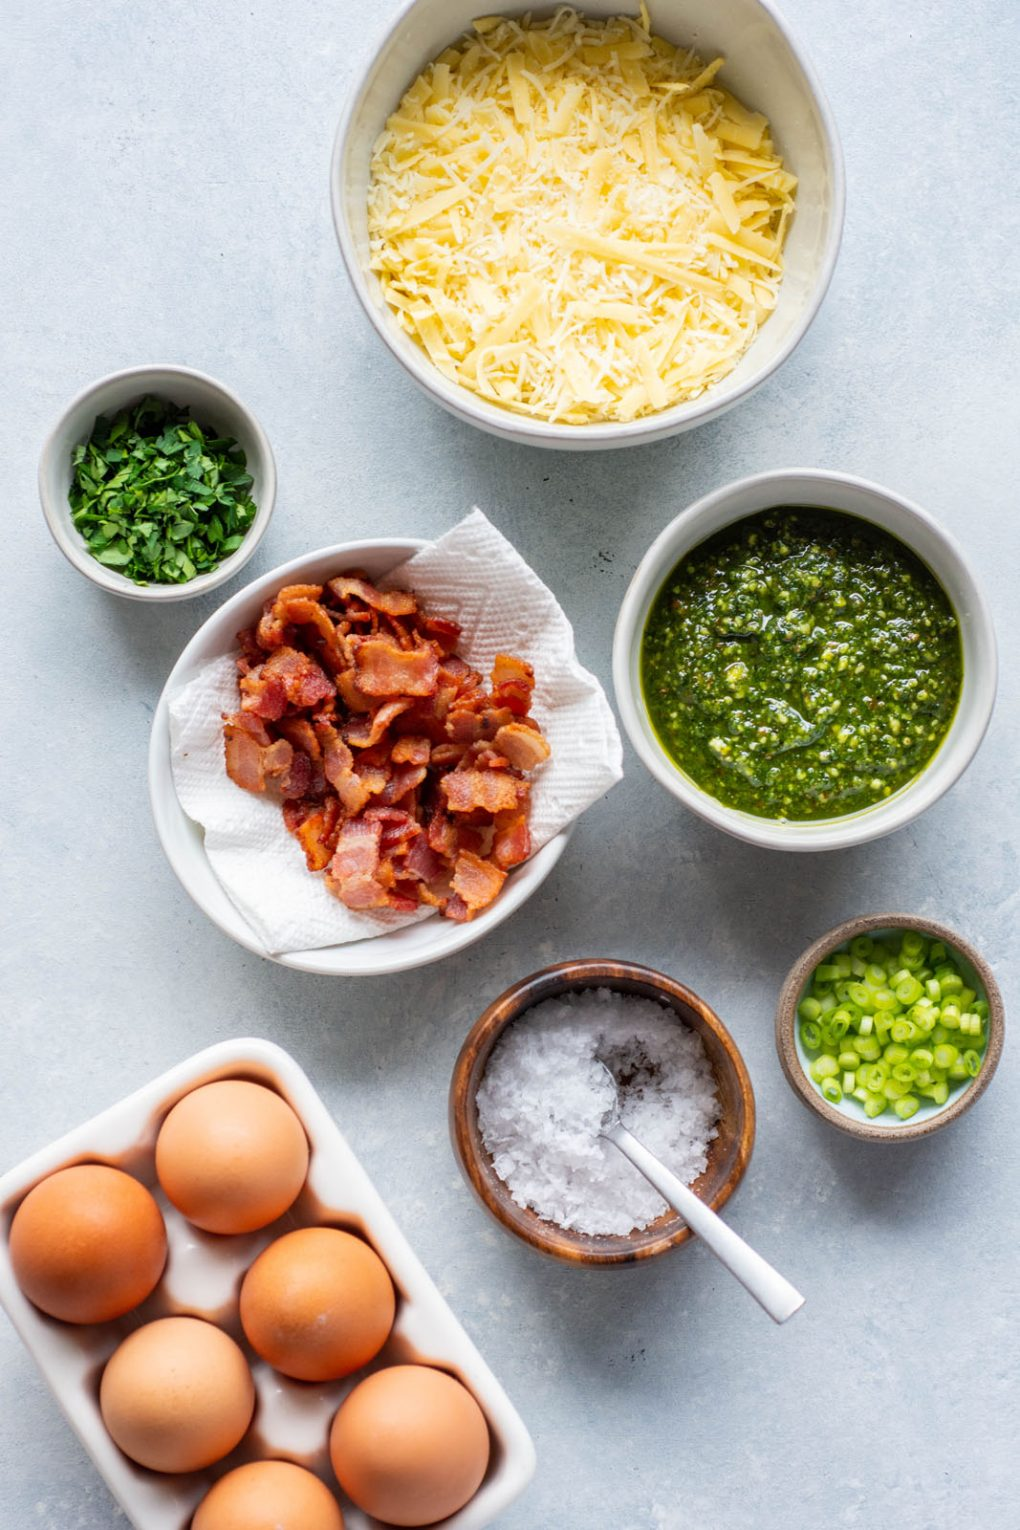 Assortment of bowls on a light colored background holding all the ingredients for the breakfast pizza. A bowl of cheese, a bowl of pesto, a bowl of herbs, a bowl of green onions, a bowl of cooked bacon, a bowl of sea salt, and a small dish of brown eggs.